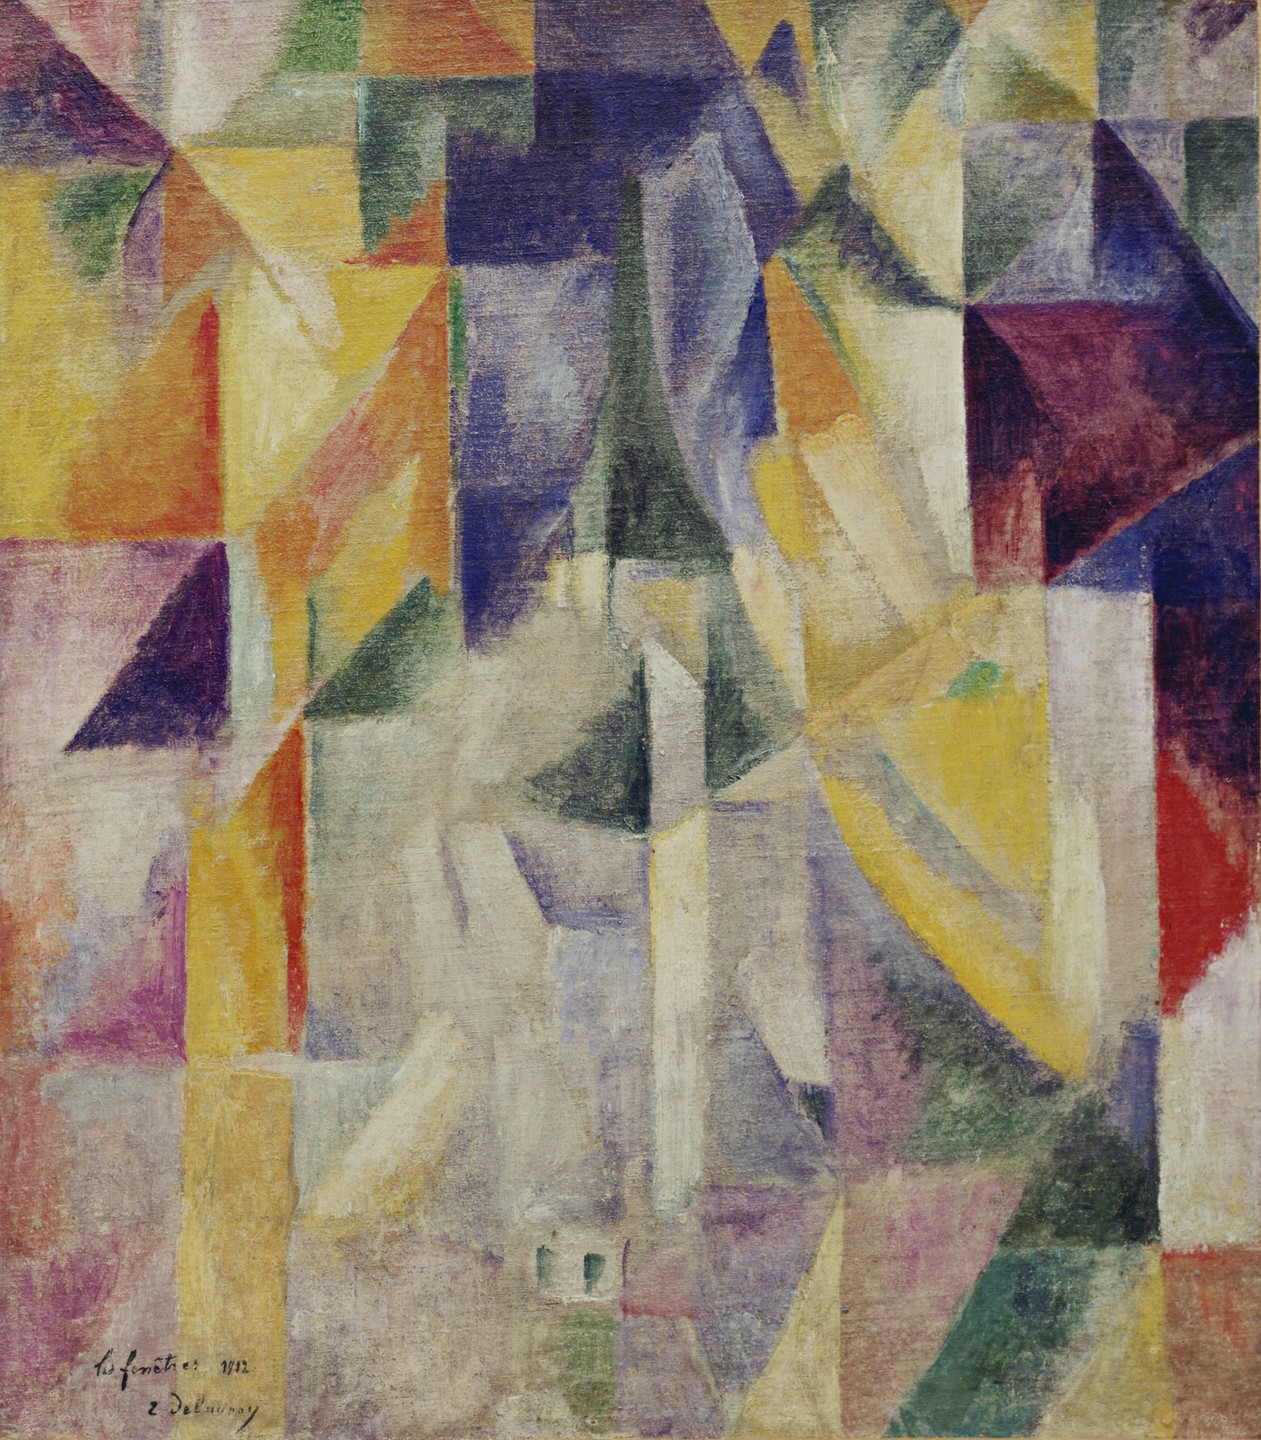 Robert Delaunay. Windows. Paris 1912